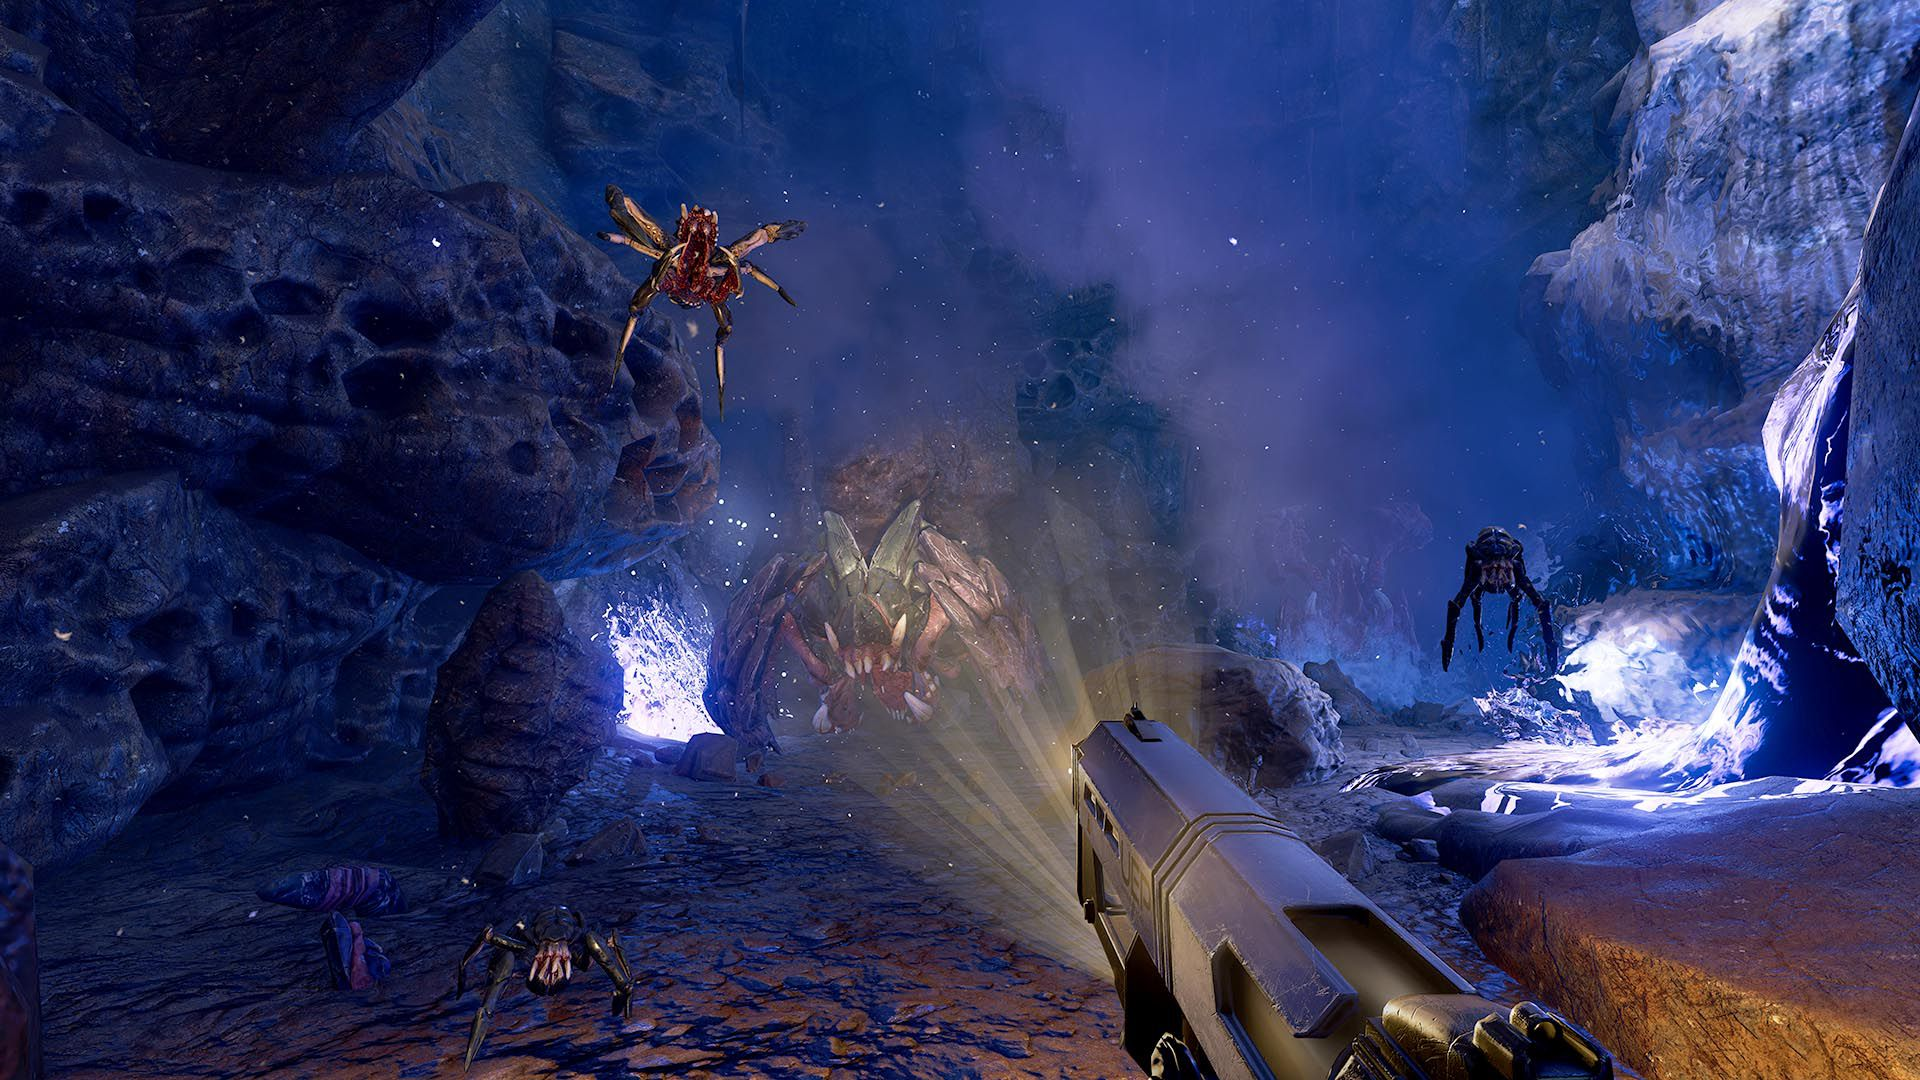 Farpoint is the VR shooter I wanted, but I didn't want the VR sweats   Polygon